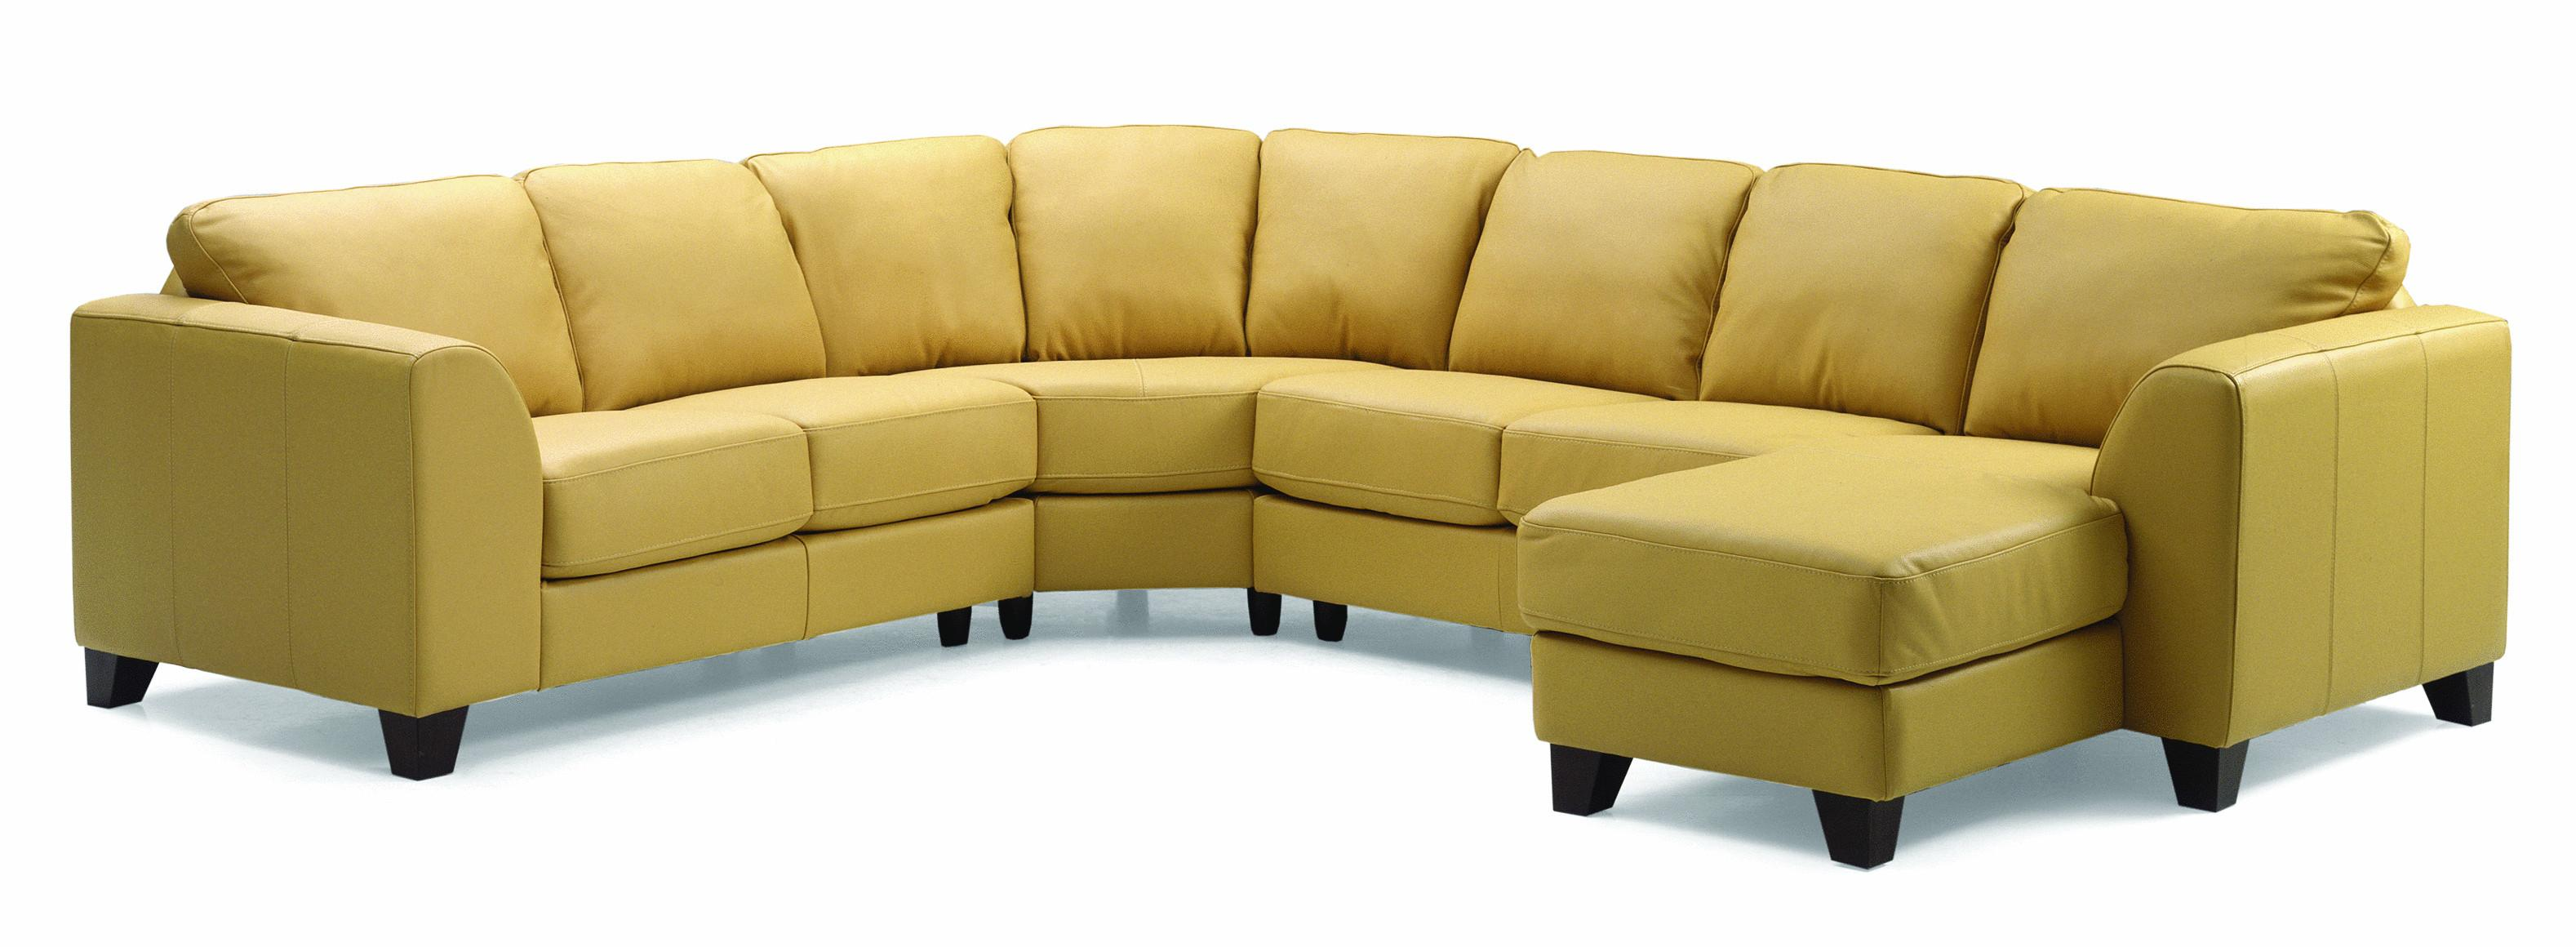 Juno Elements Chaise Sectional by Palliser at SuperStore